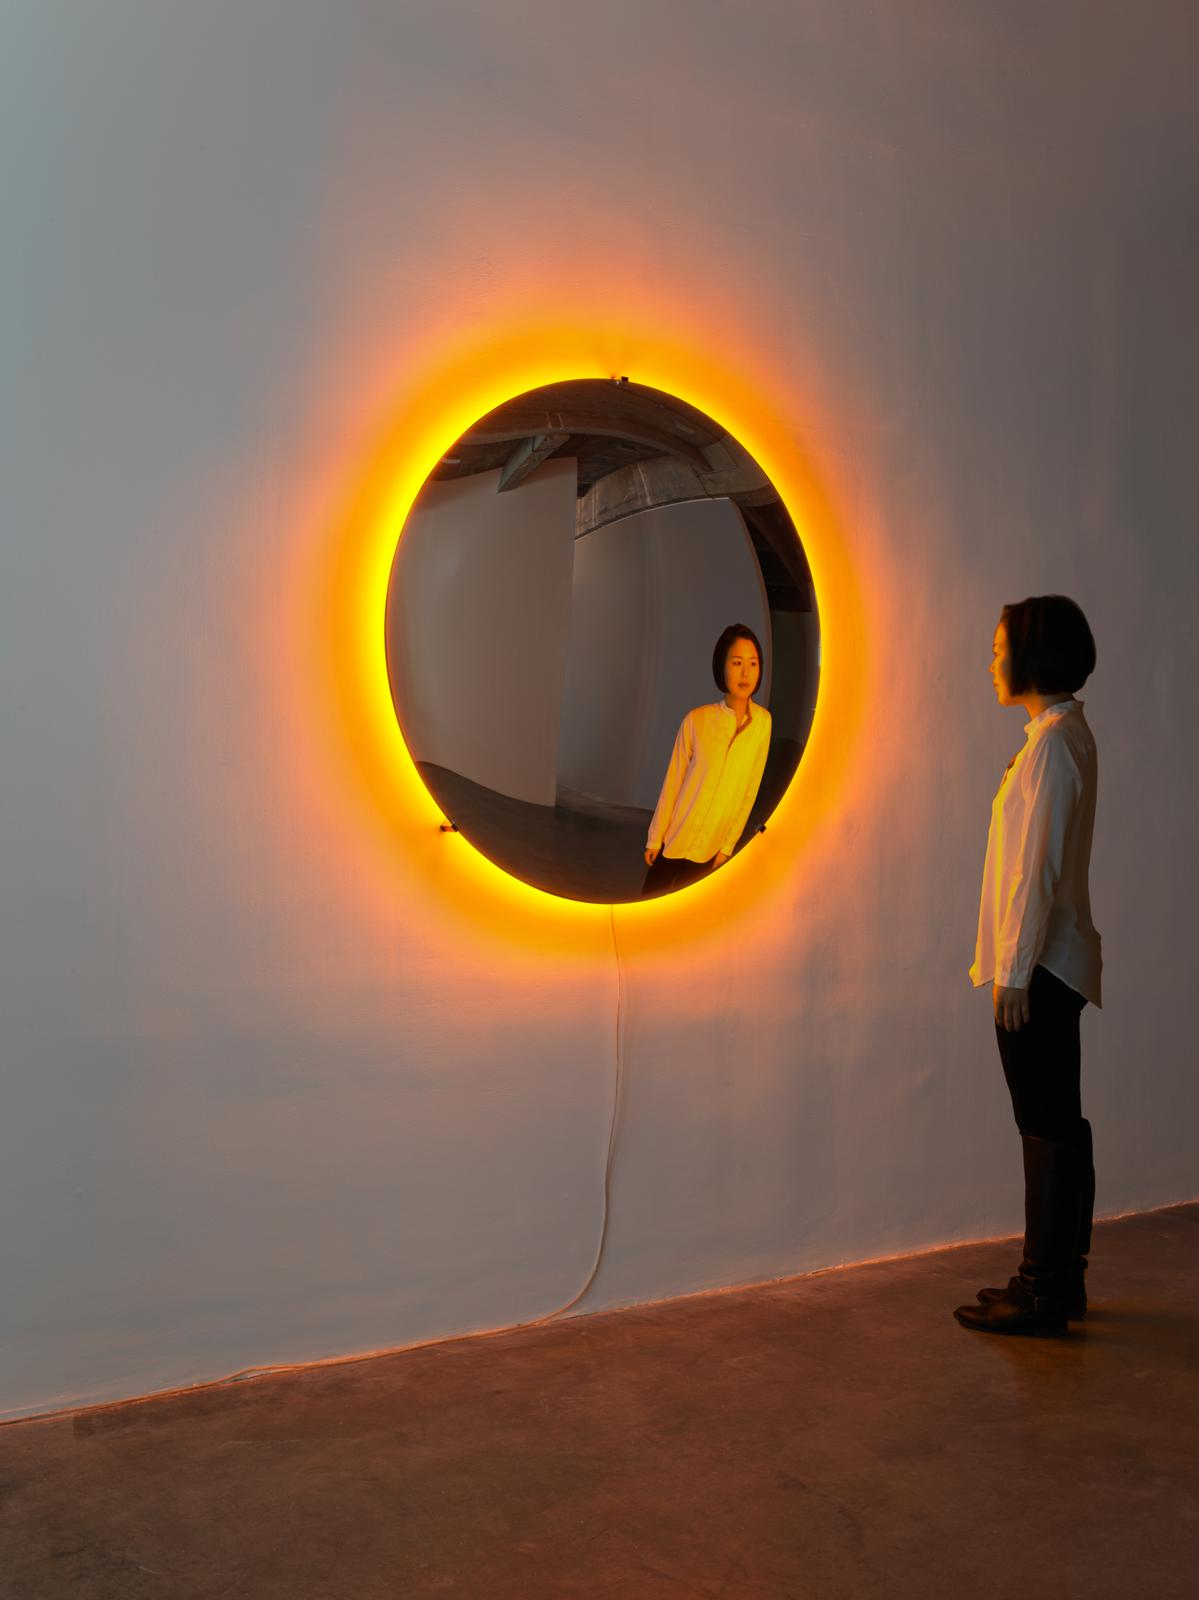 Photos Videos News Akb48 Mariko Shinoda: Midnight Sun • Artwork • Studio Olafur Eliasson